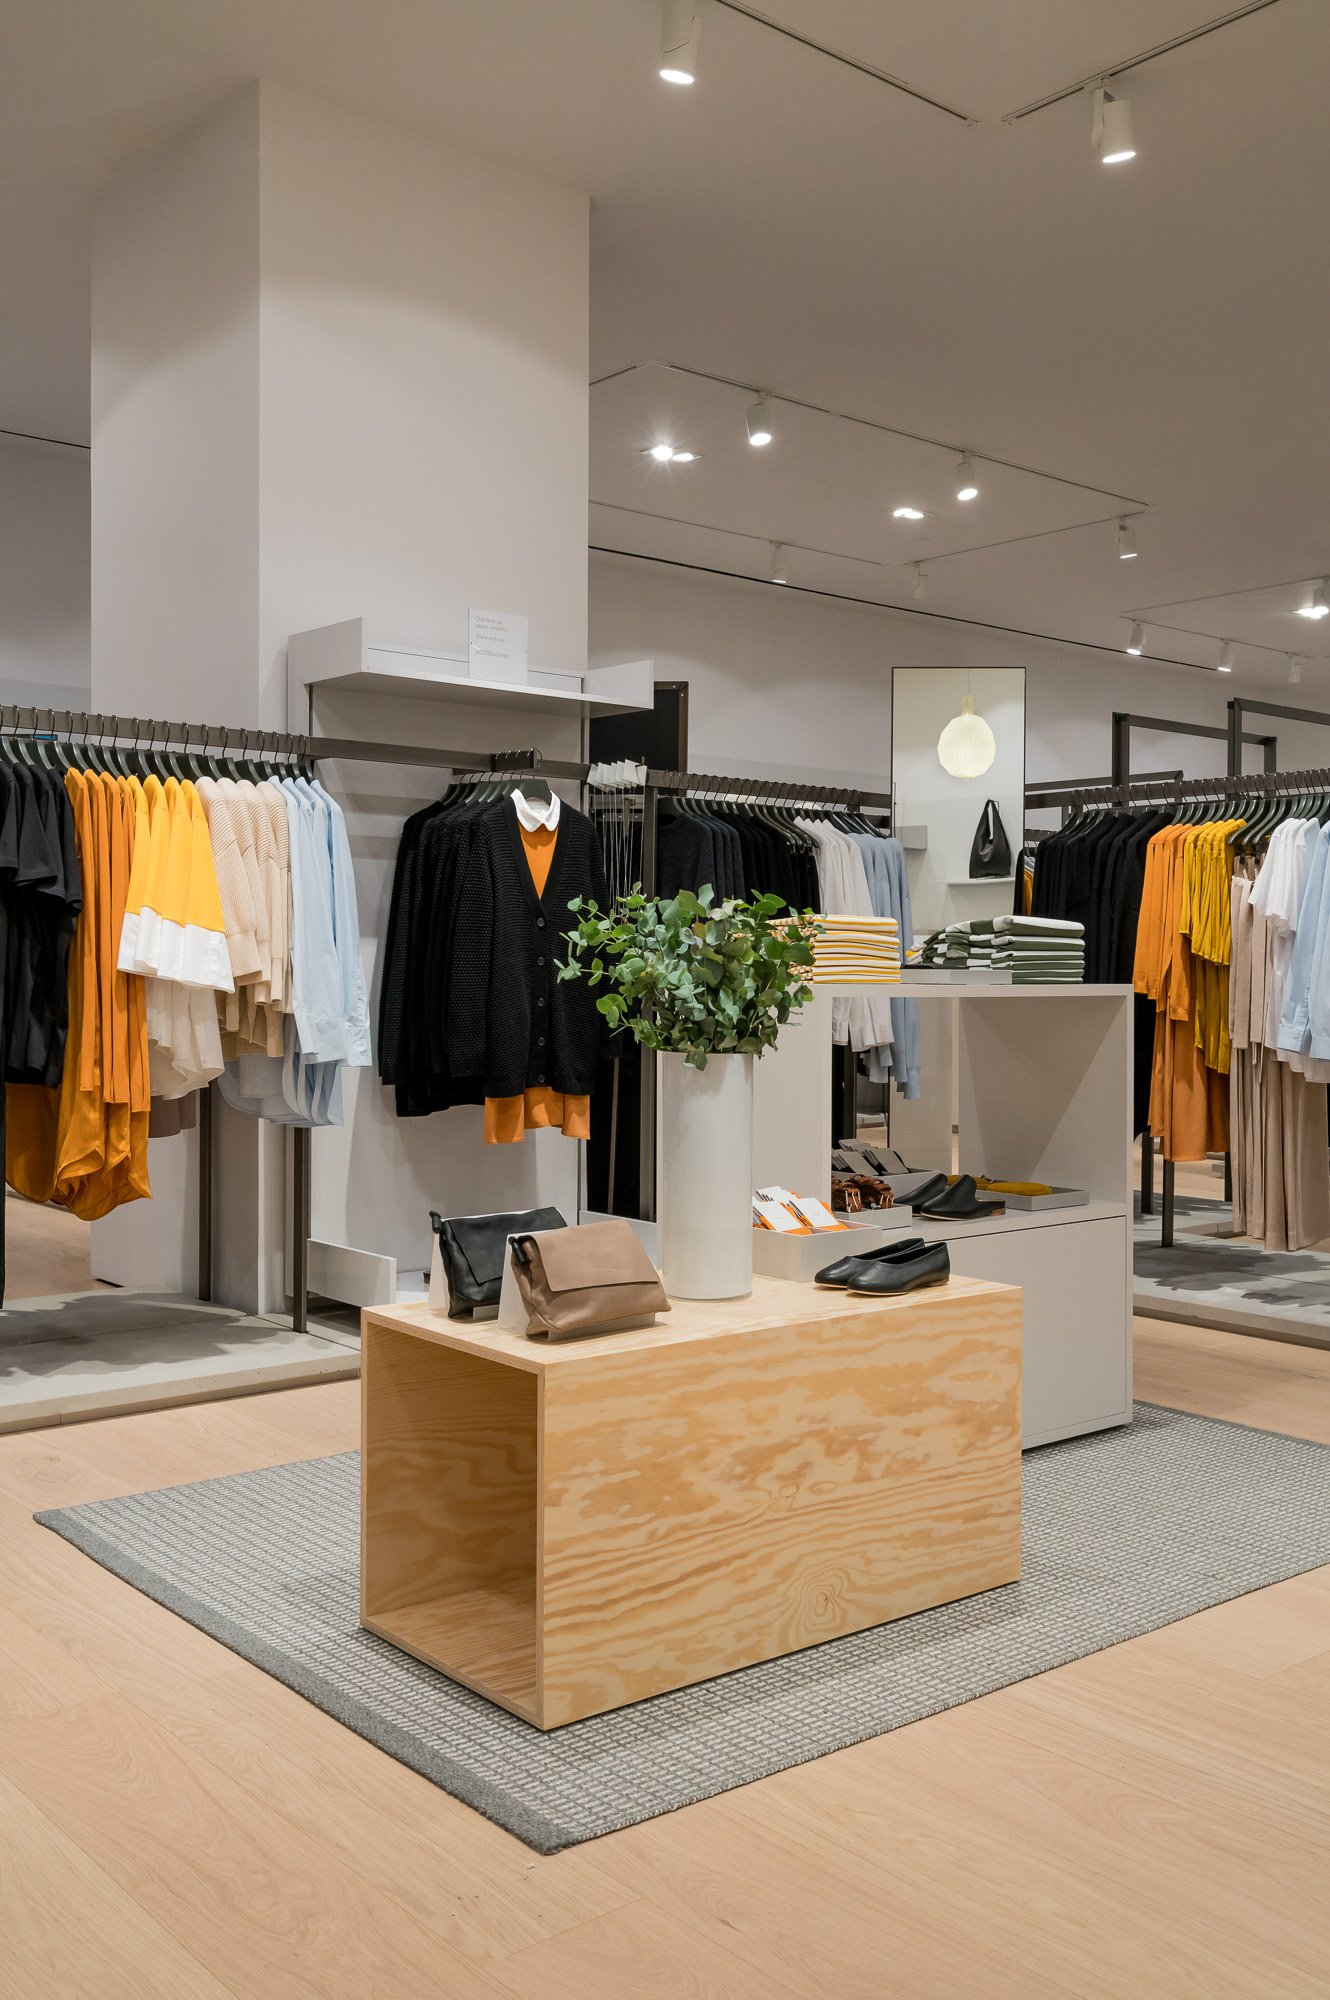 cos collection of style premium brand of swedish clothing retailer hum hennes u mauritz opened the second store in romania within baneasa shopping